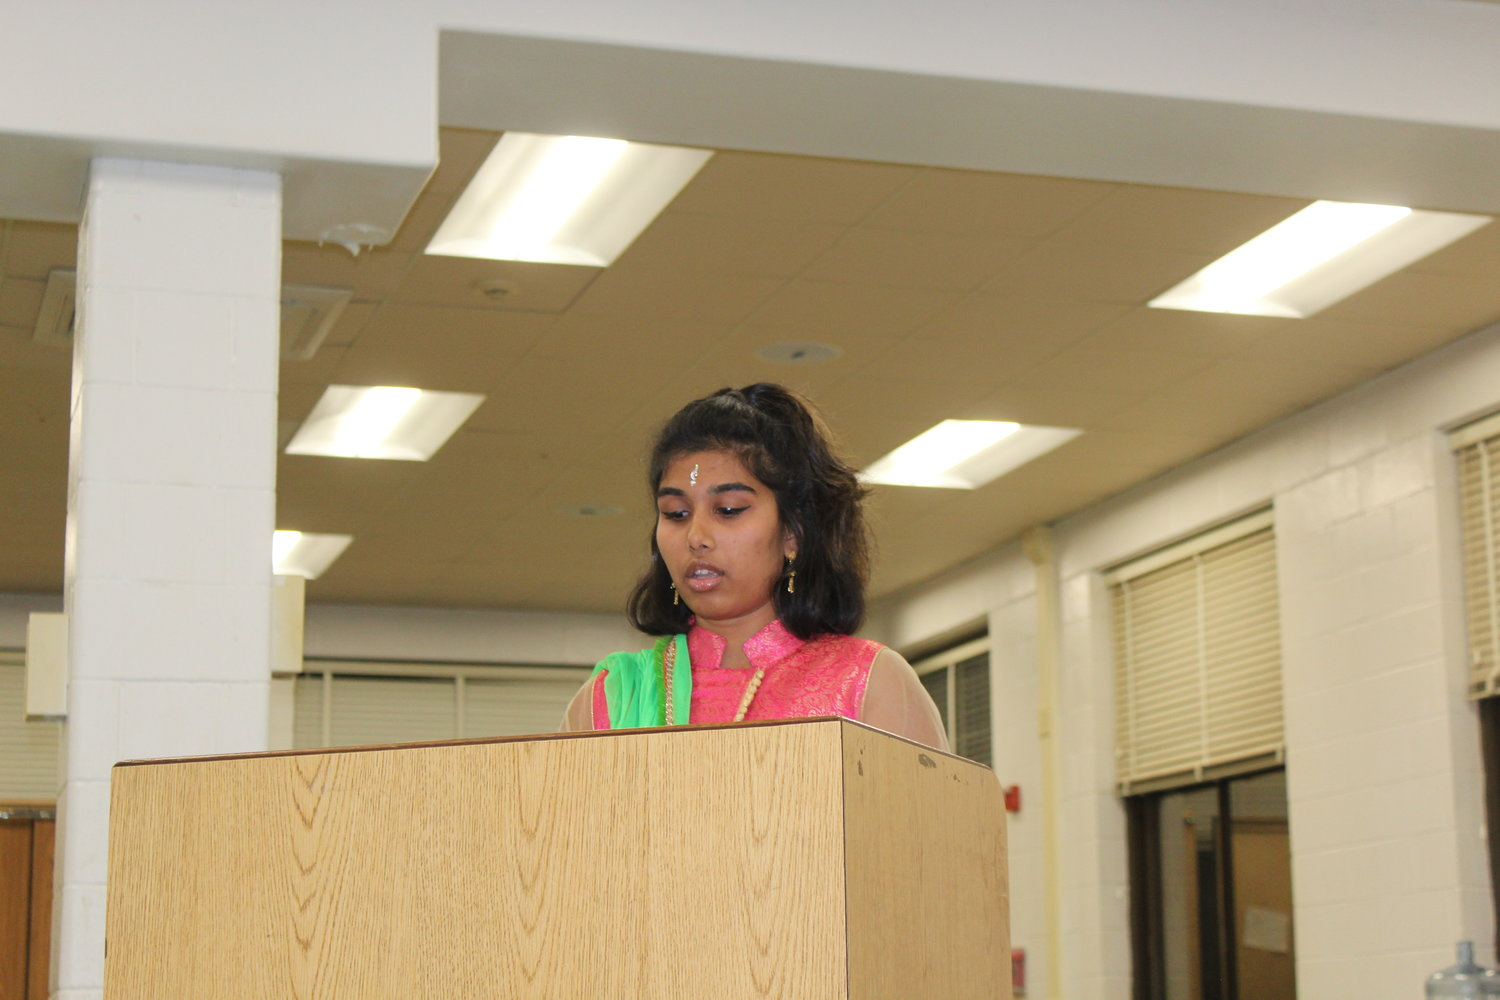 After Devi Arjune spoke about her petition to add Diwali onto school calendars, the Central High School District Board of Education agreed to dissuade teachers from giving tests and assigning homework on the holiday.